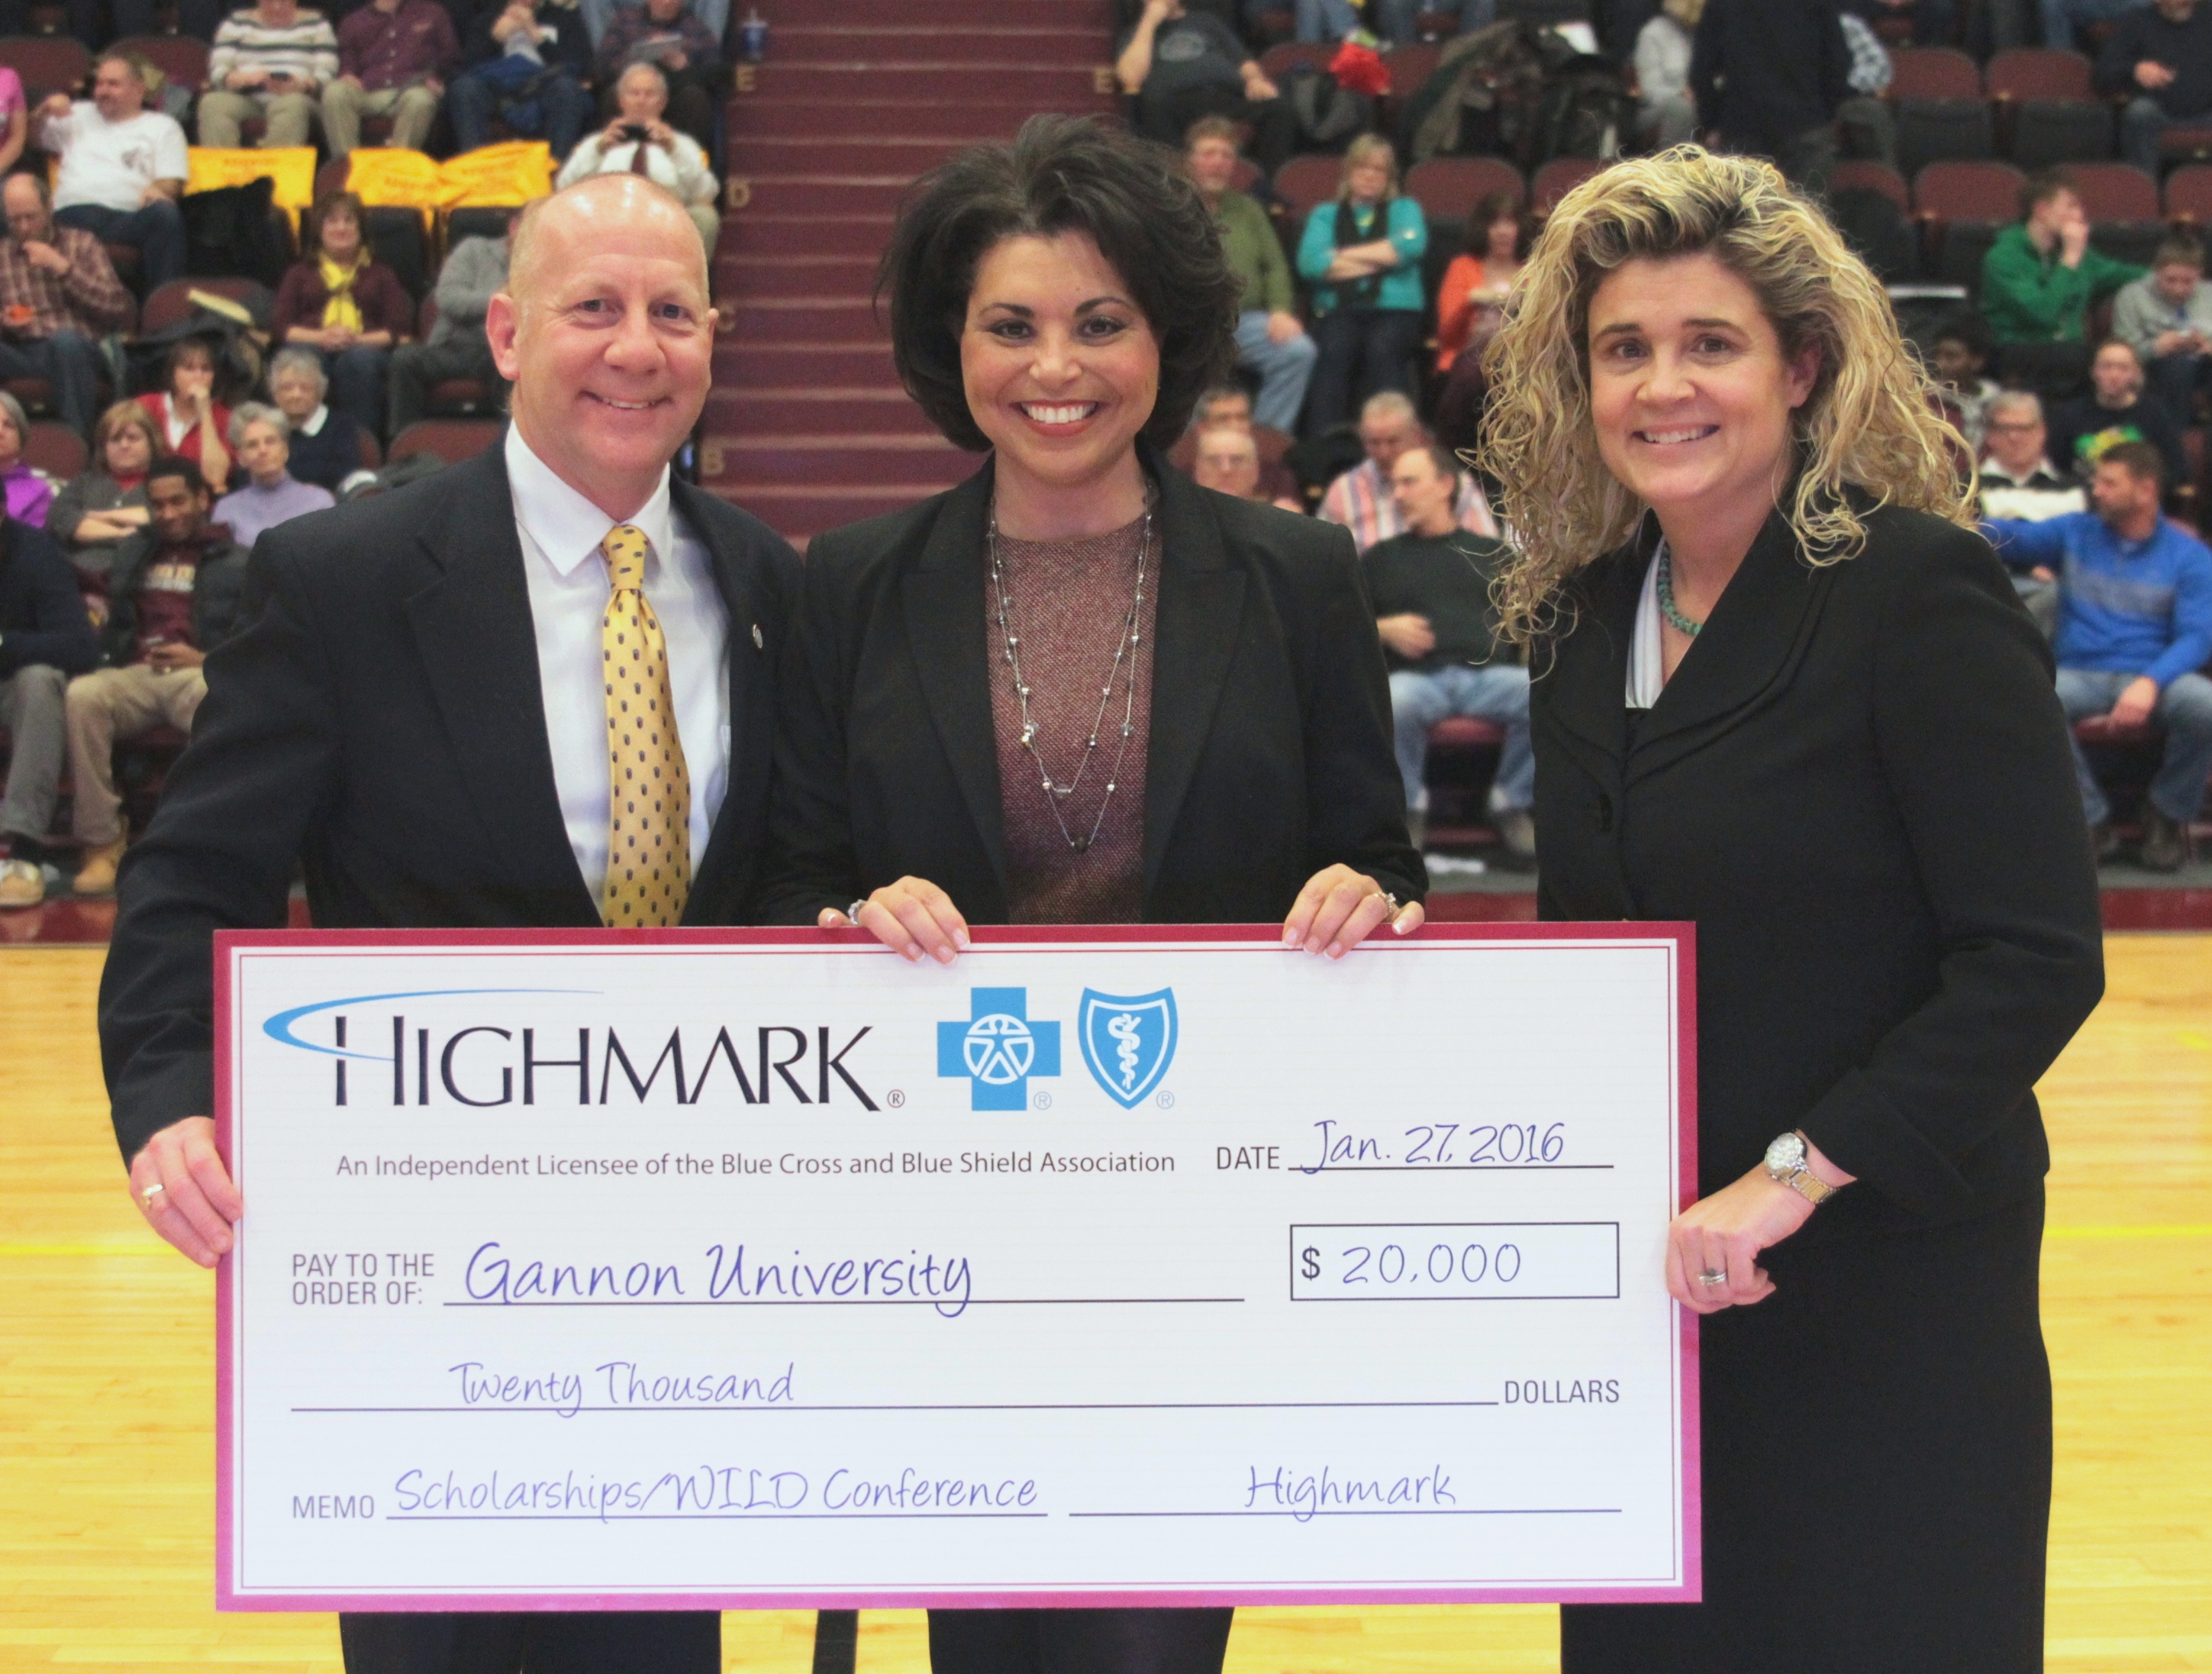 Highmark Check Presentation